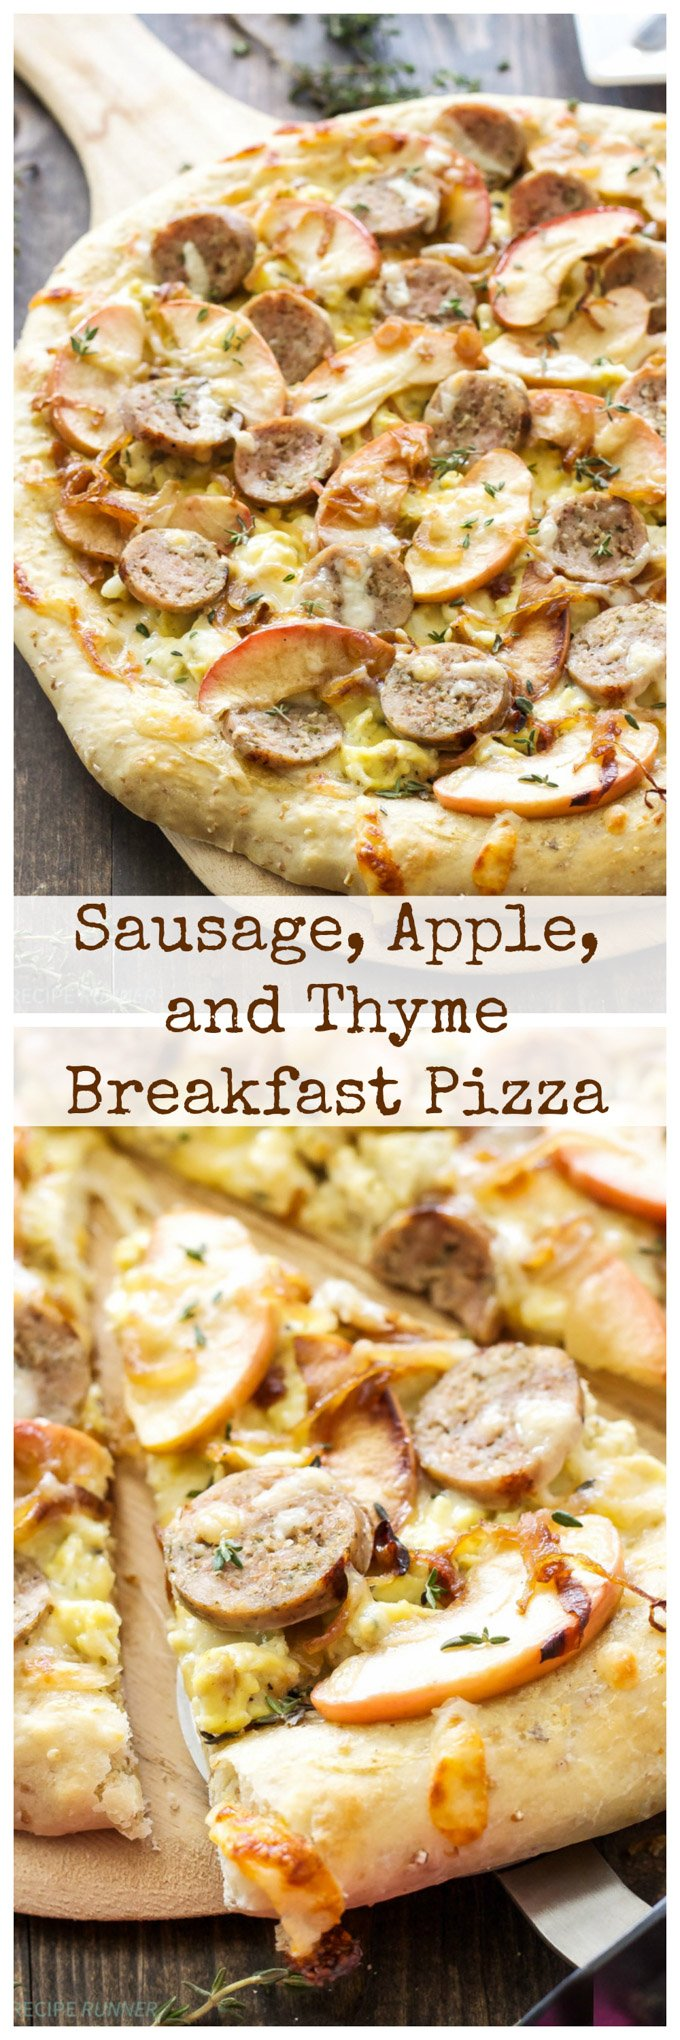 Sausage, Apple, and Thyme Breakfast Pizza | Pizza for breakfast is always a good idea!